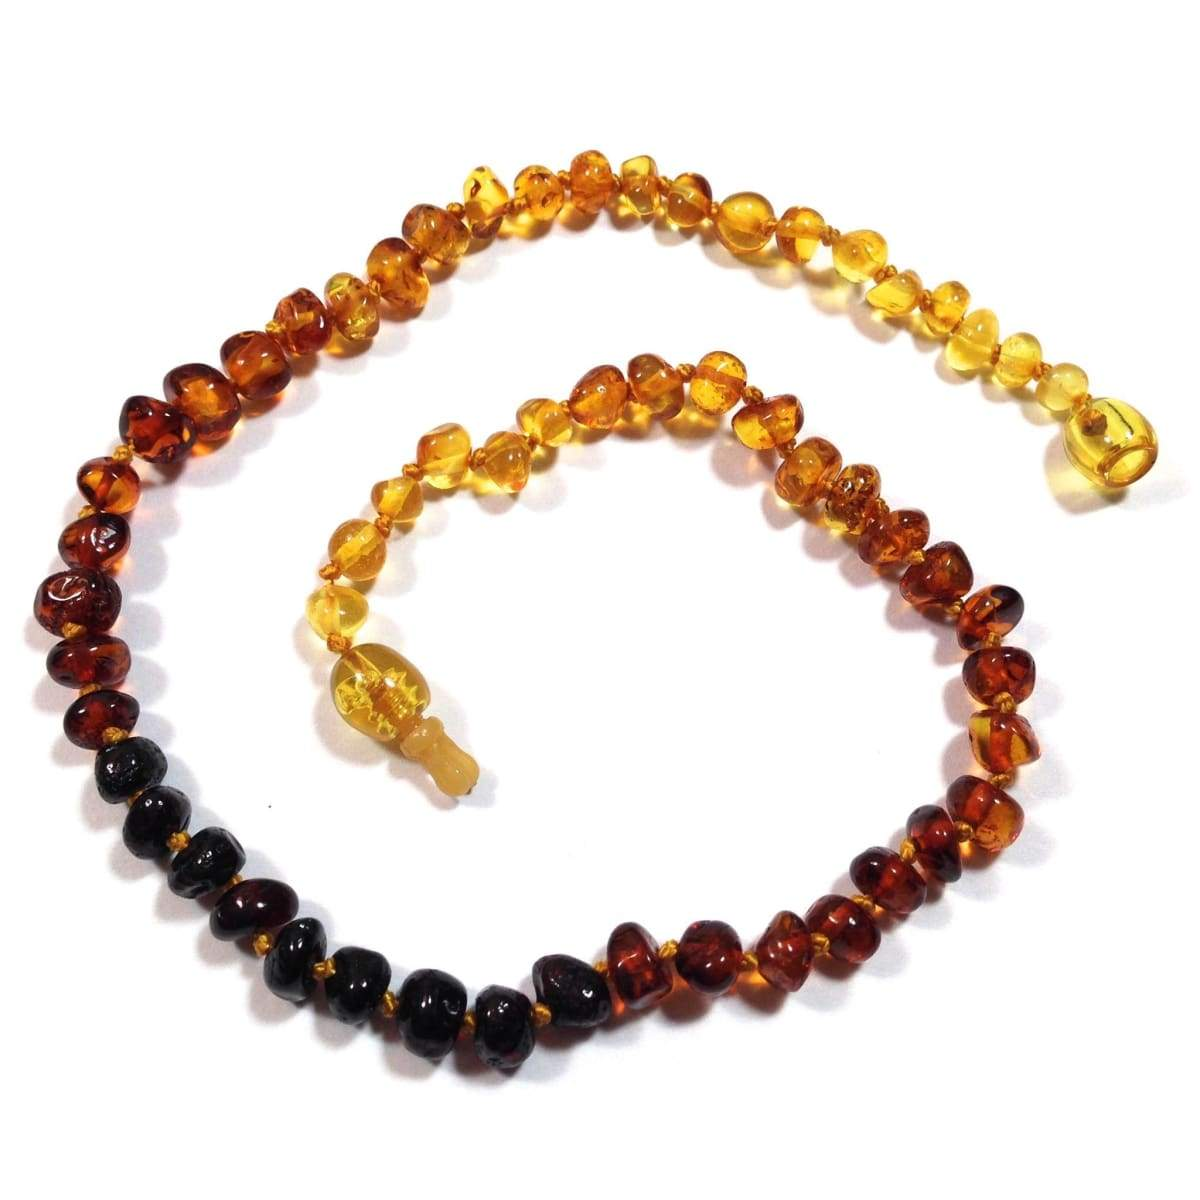 Baltic Amber Rainbow Round - 12 Necklace - Pop Clasp - Baltic Amber Jewelry